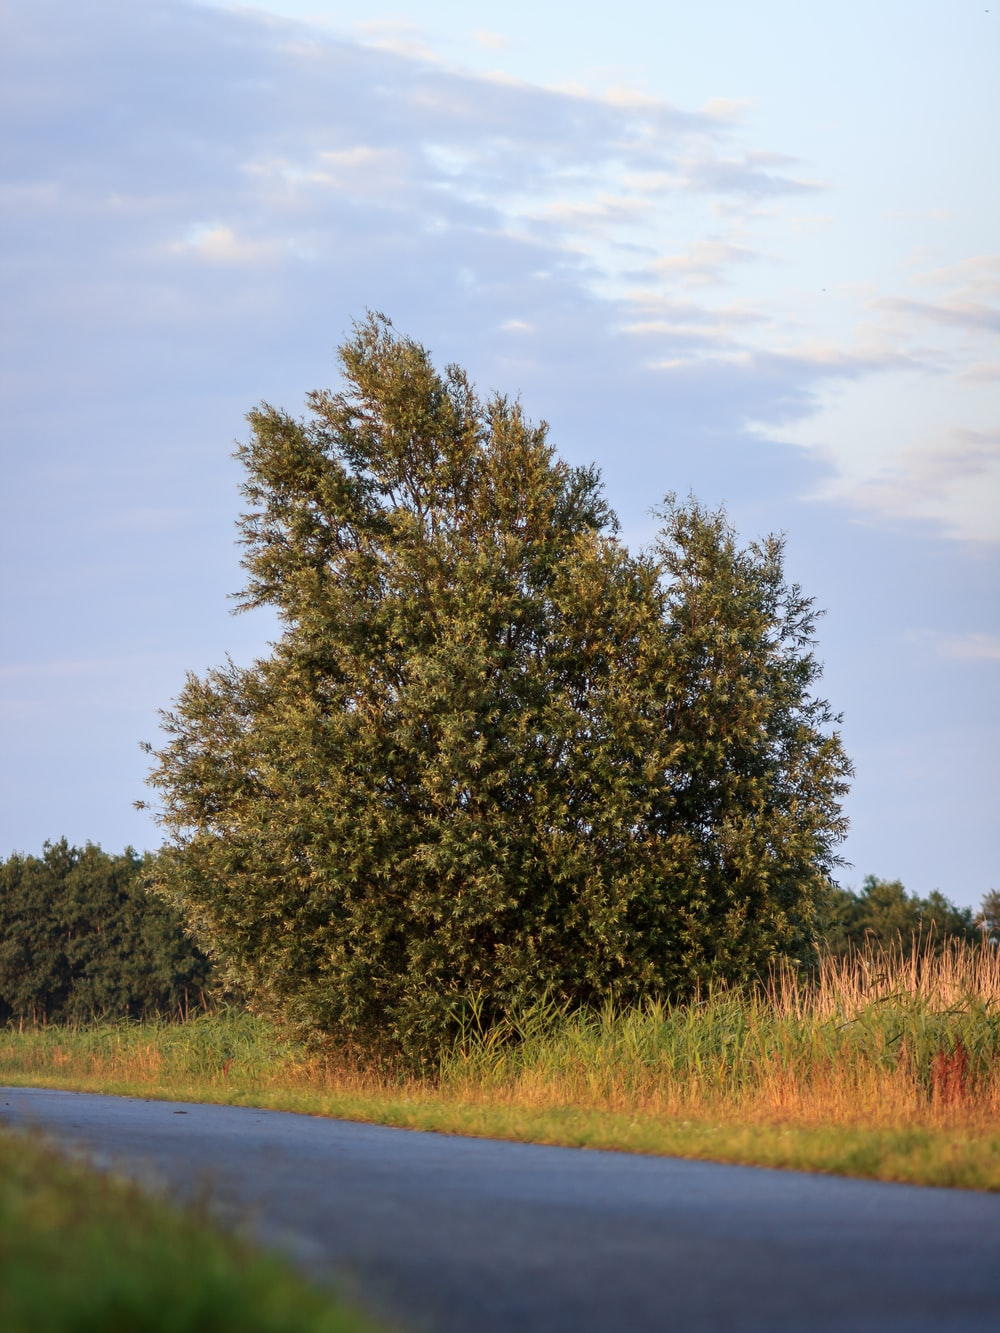 green tree beside gray road during daytime